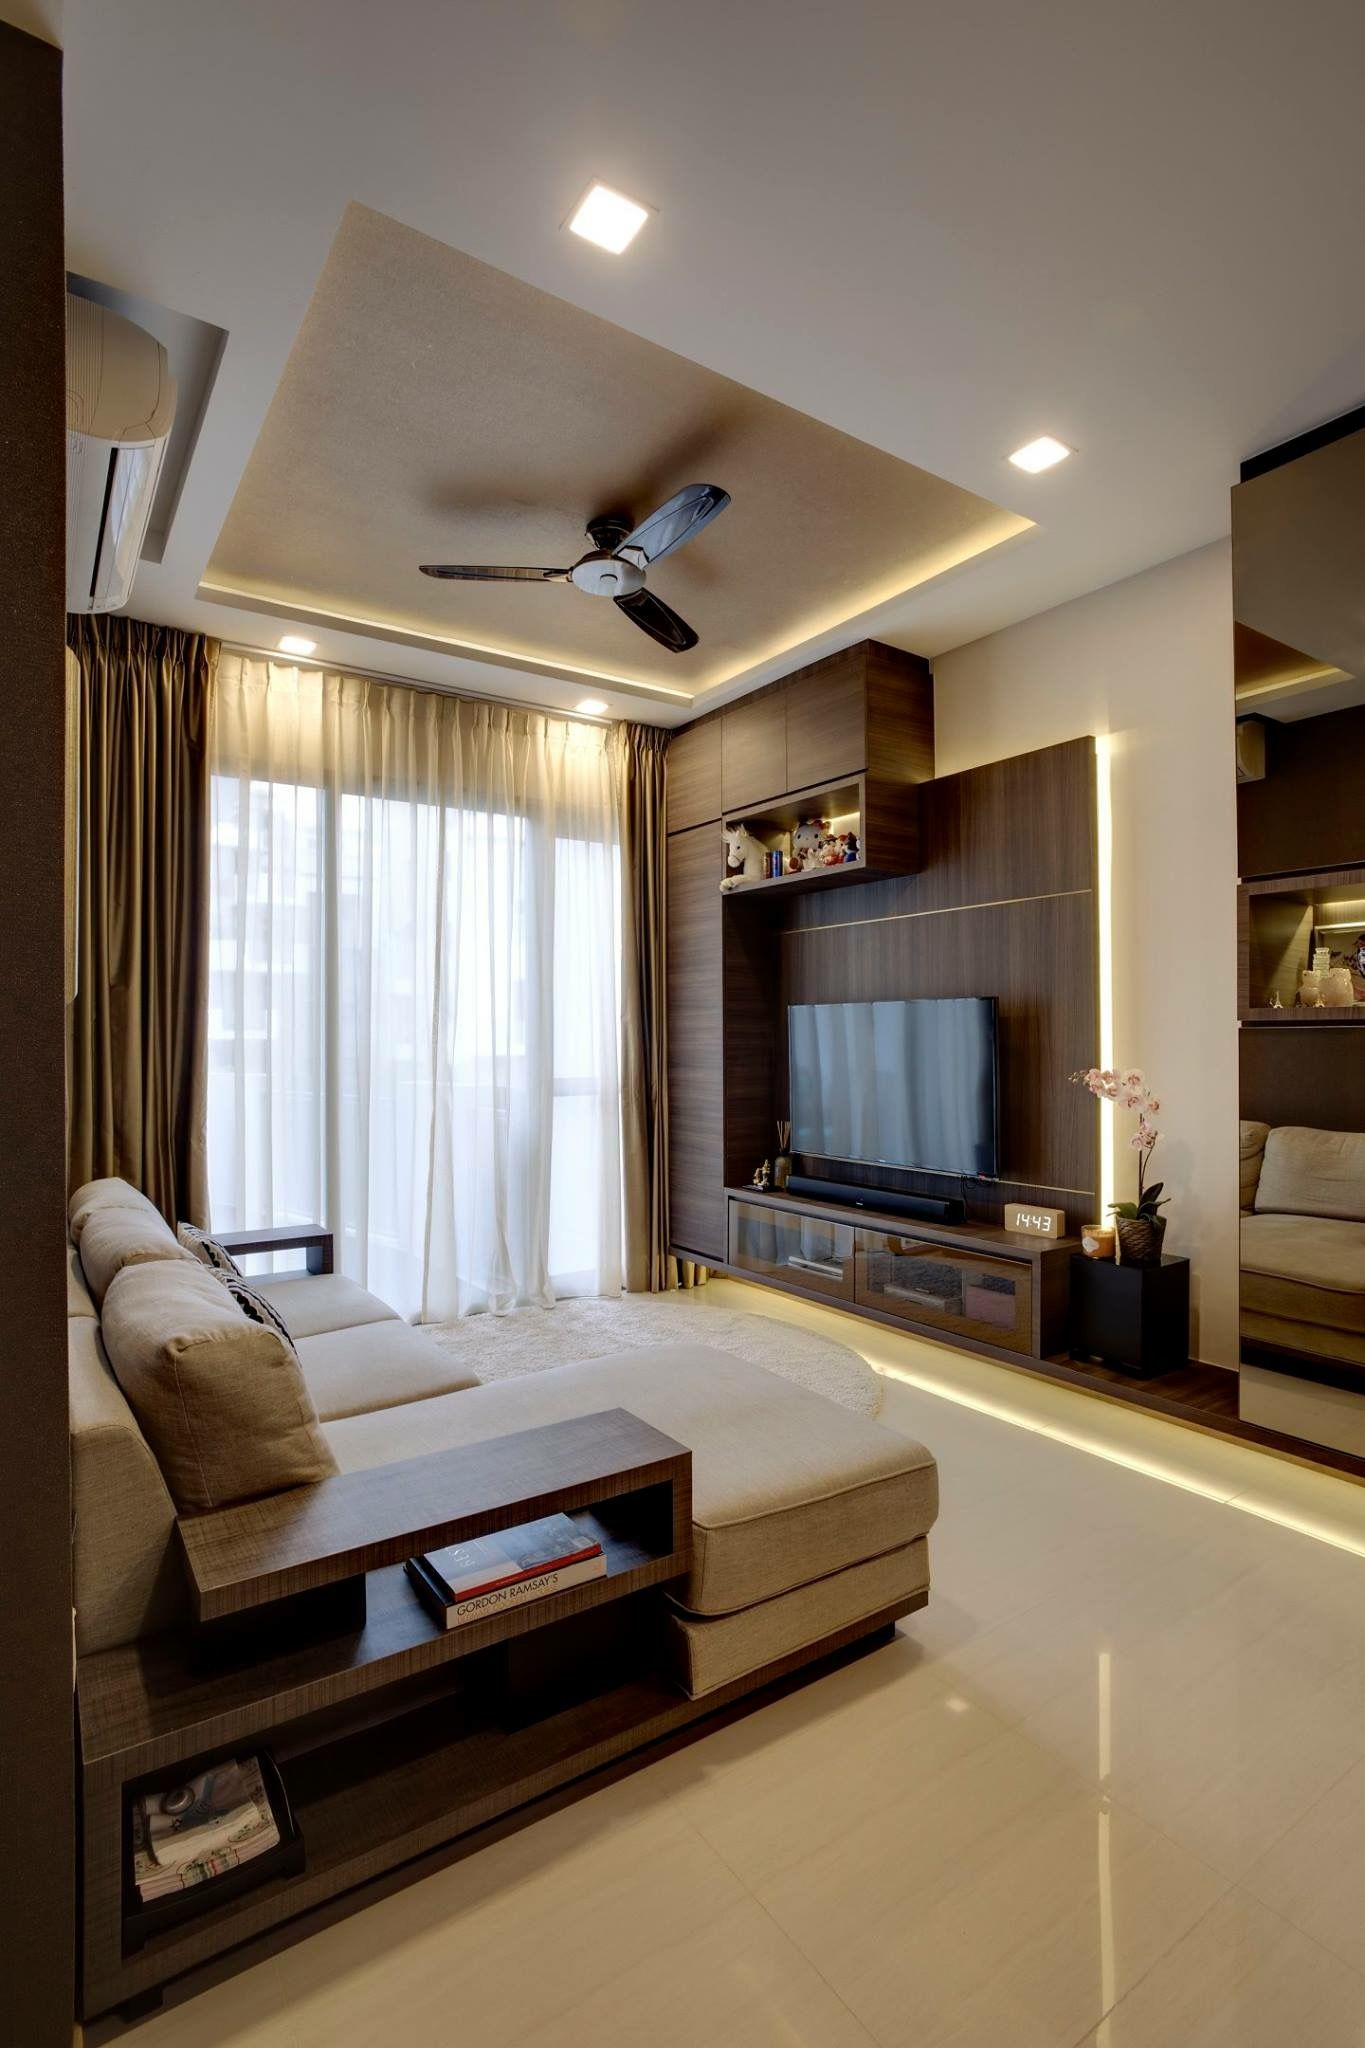 Drawing Room Design: Sample For: 1) Lighting + Fan Placement 2) Ceiling Height